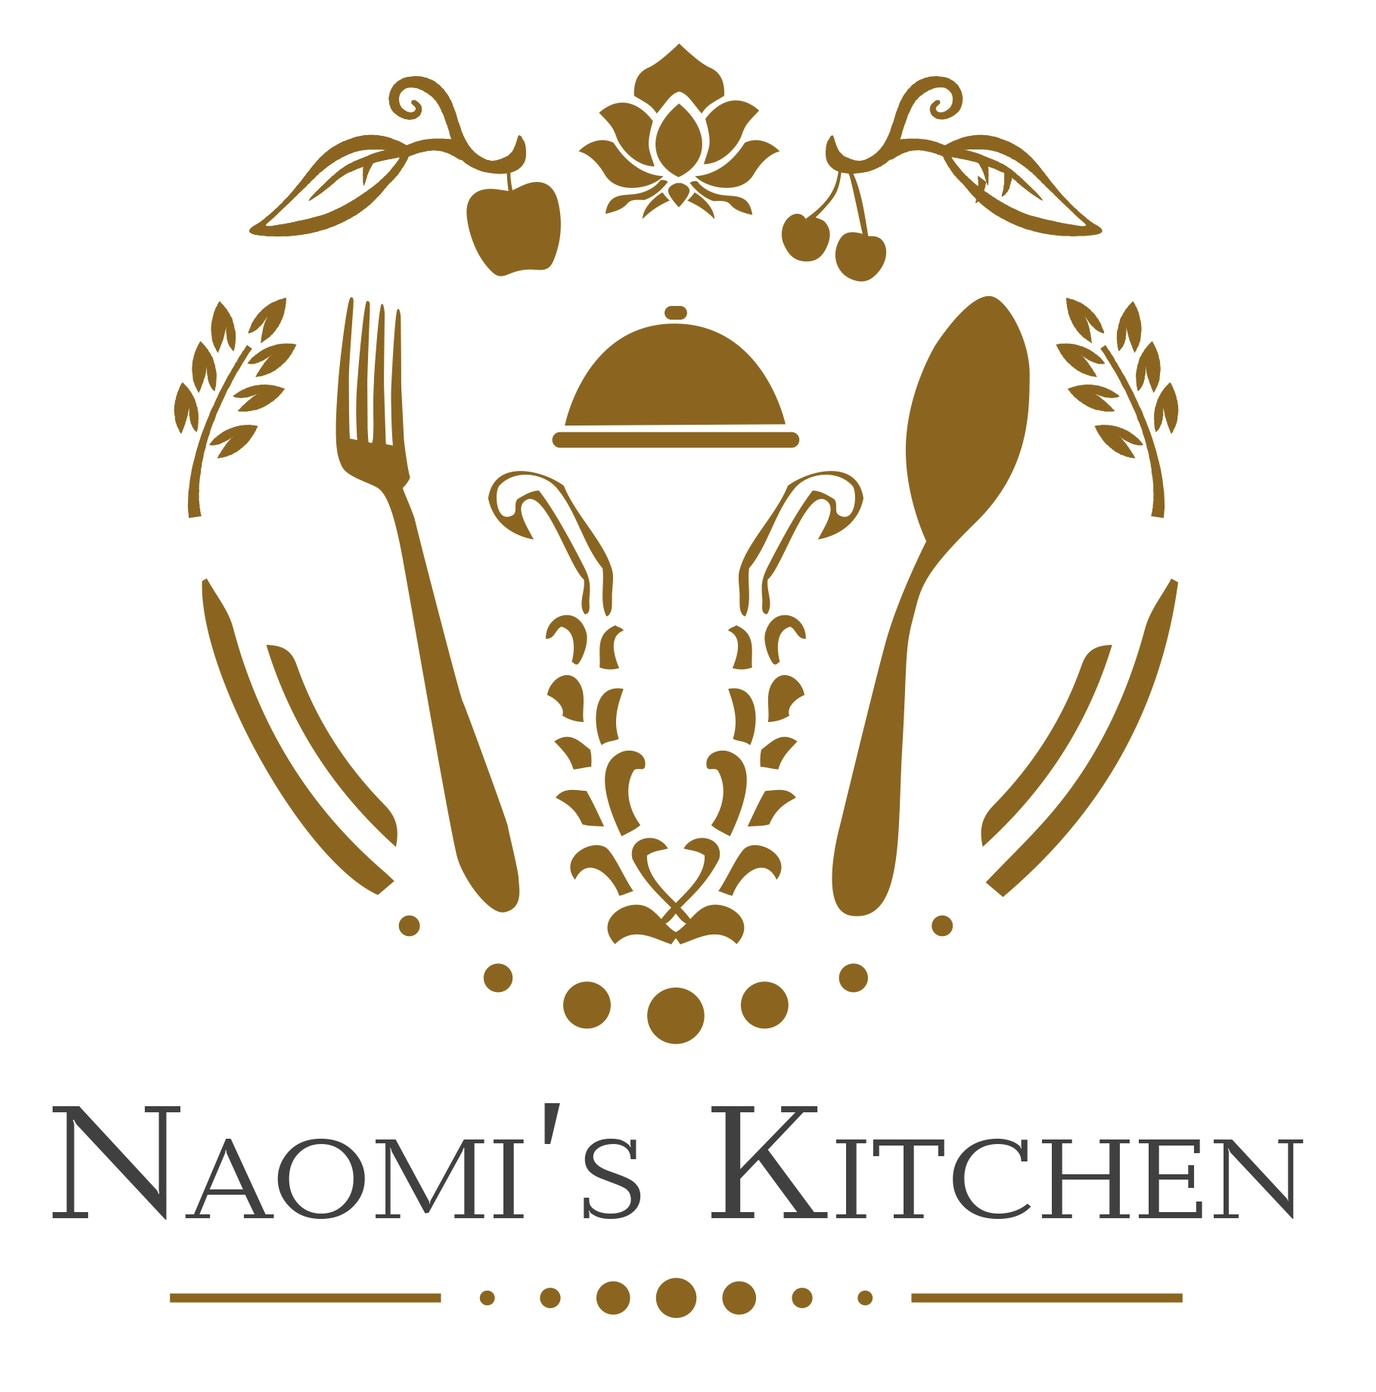 Naomi's kitchen Logo super foods